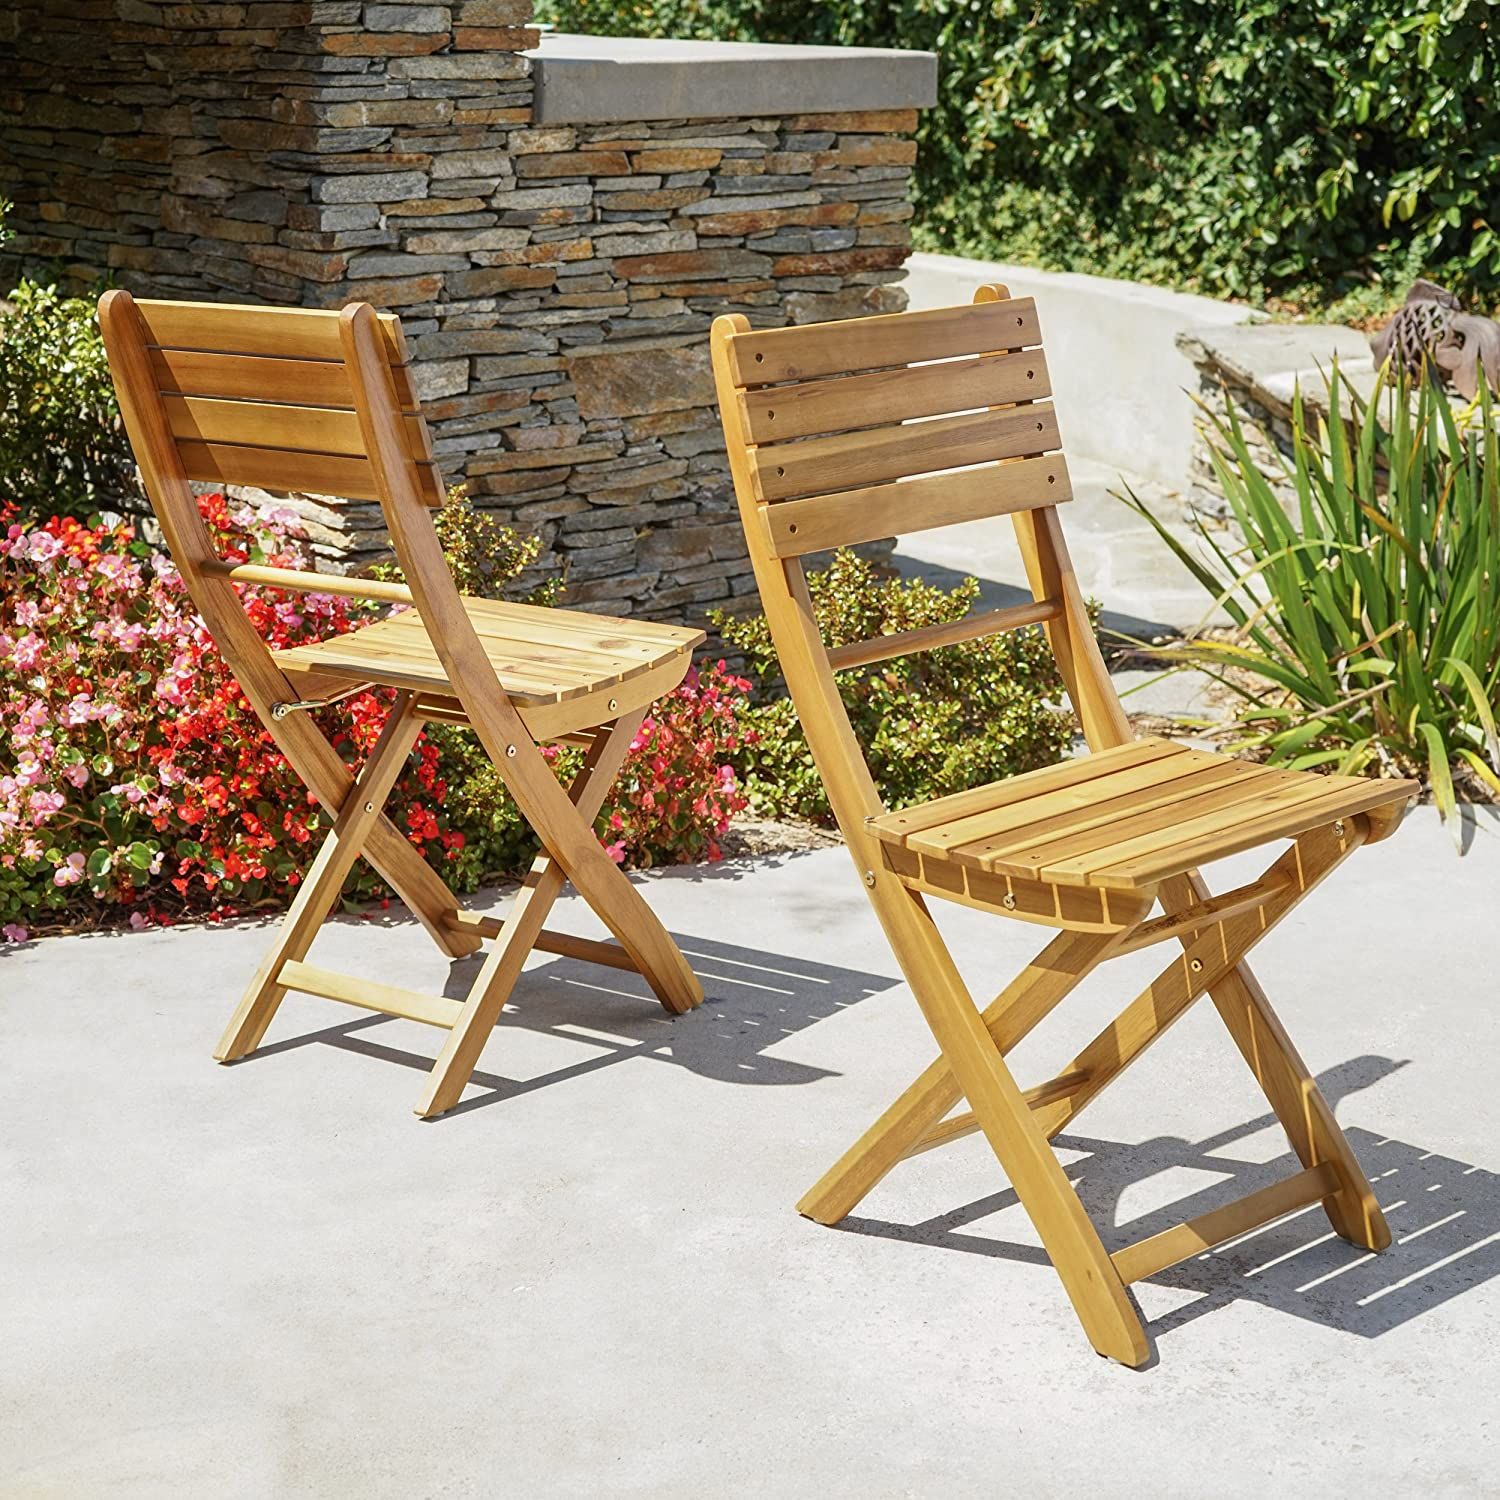 Vicaro Acacia Wood Foldable Outdoor Dining Chairs Set of 2 Perfect for Patio with Natural Finish